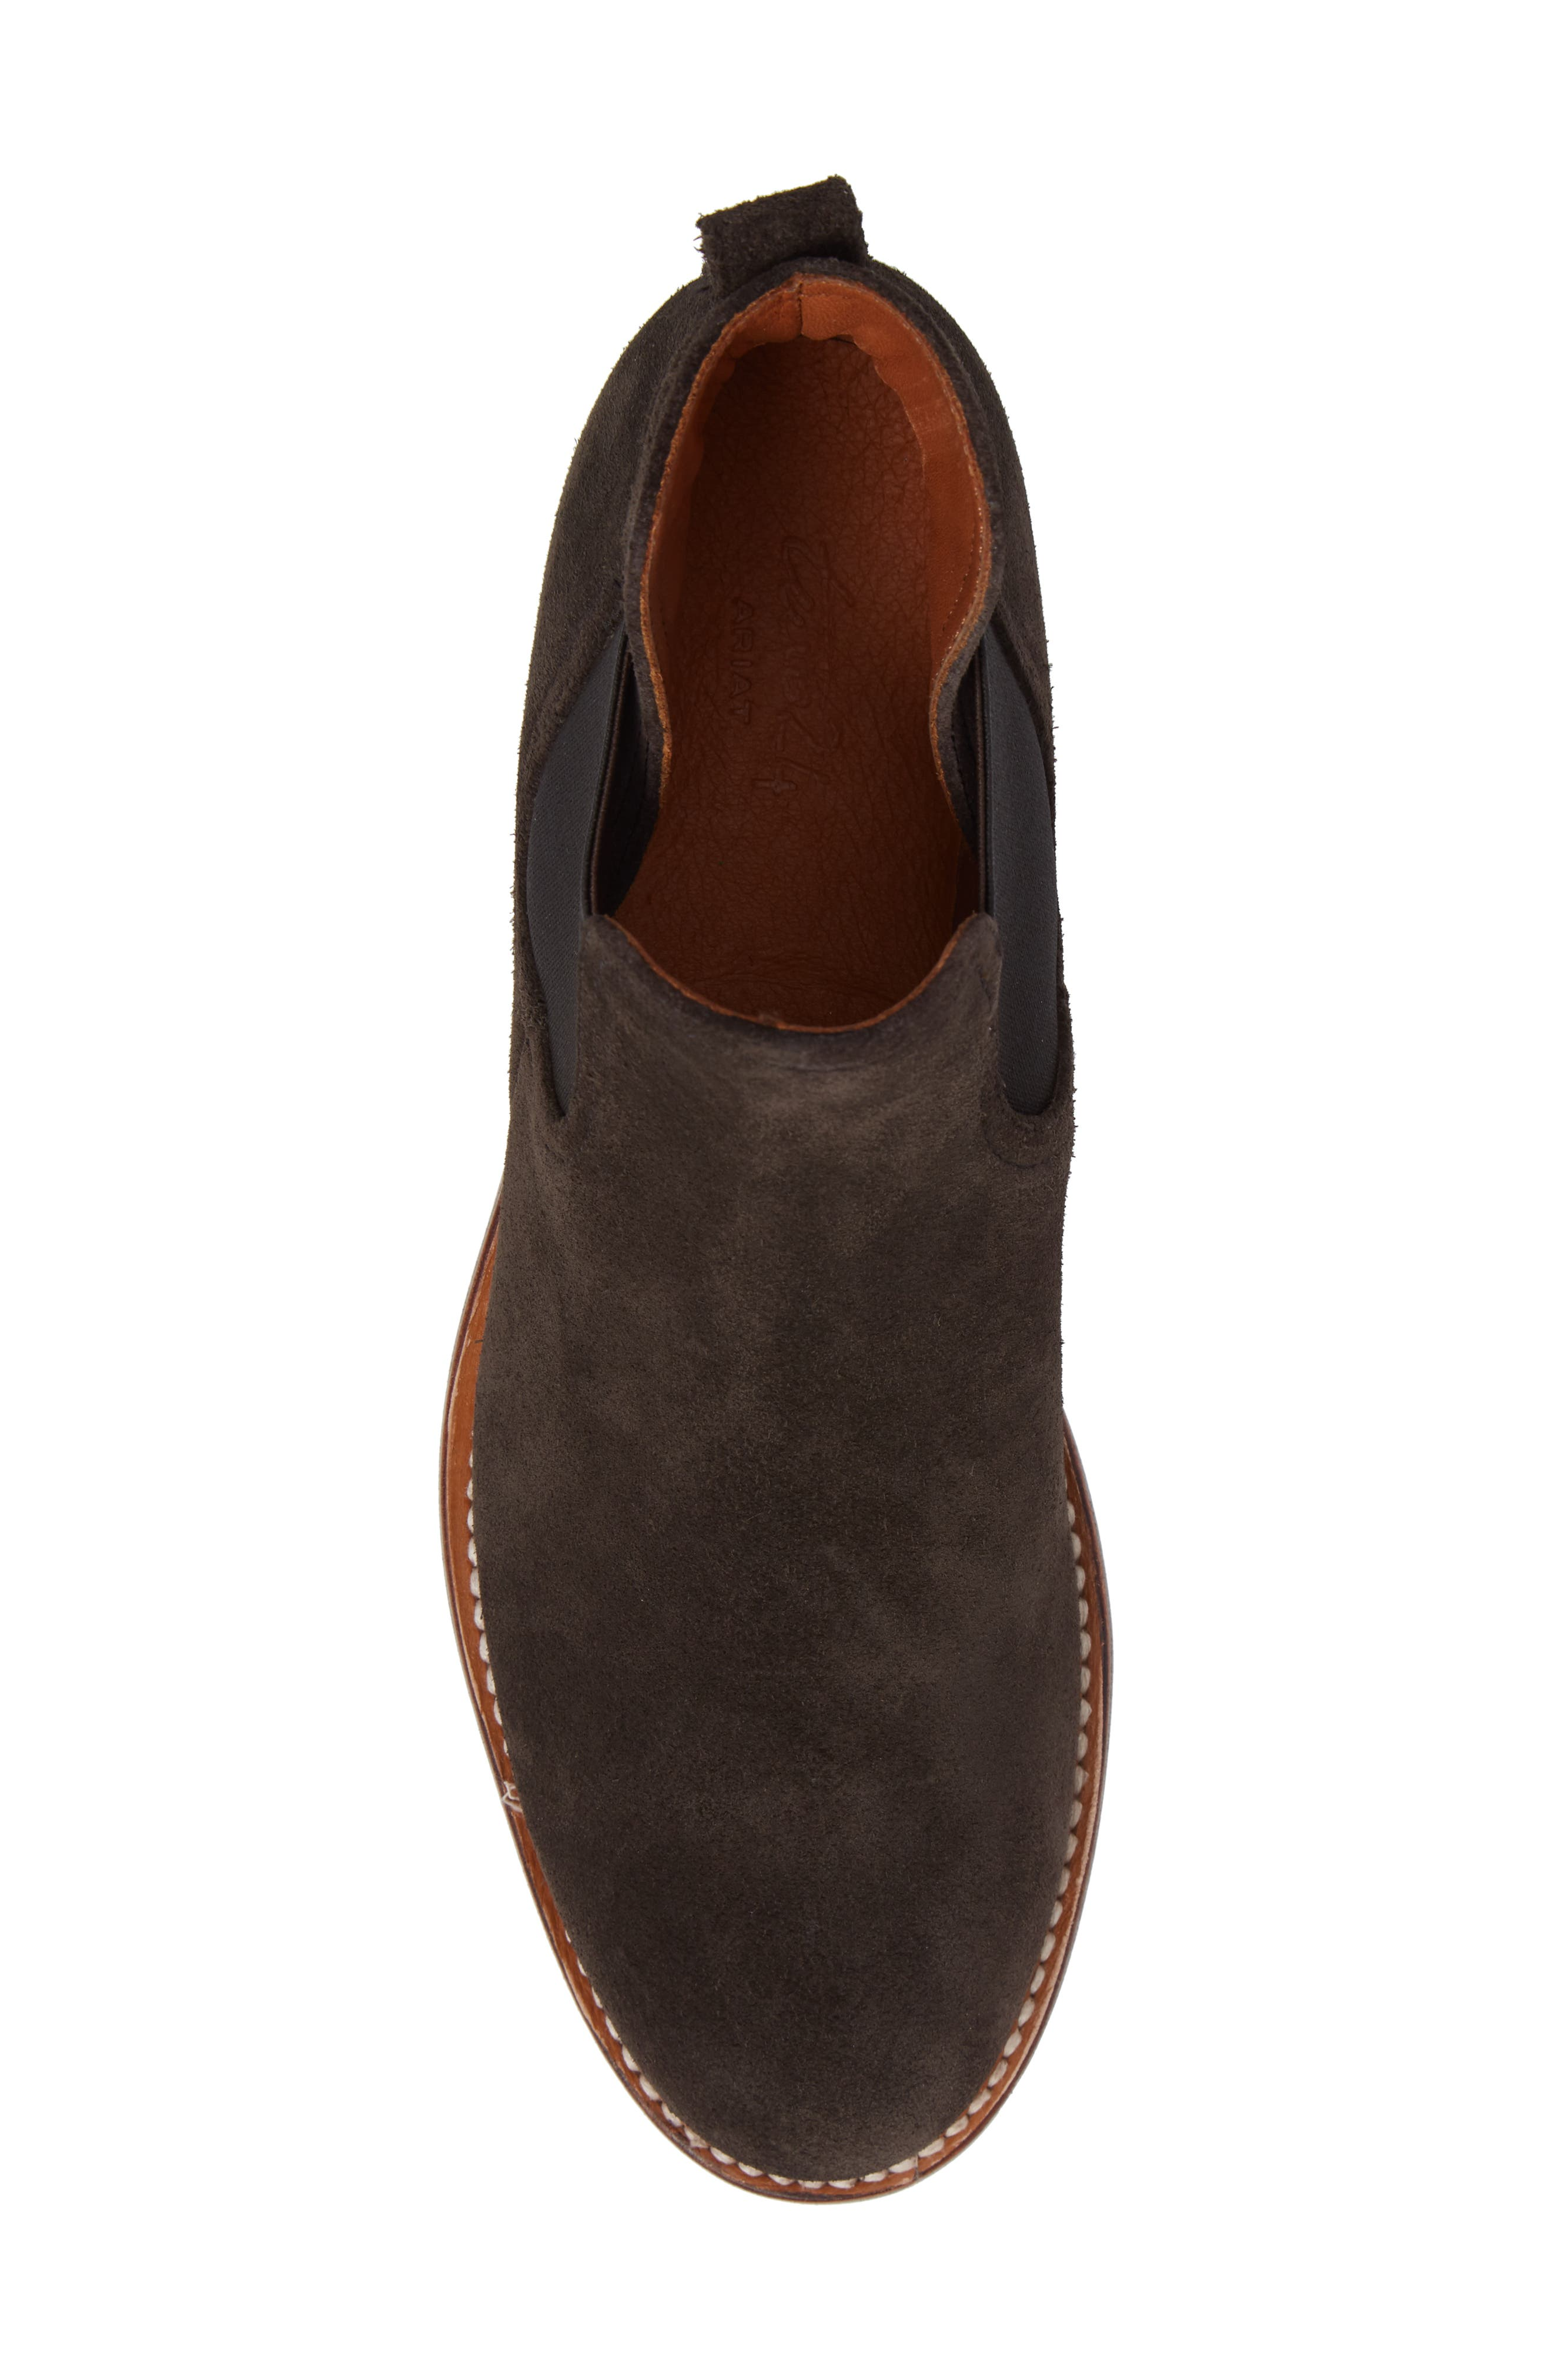 Rio Chelsea Boot,                             Alternate thumbnail 5, color,                             200